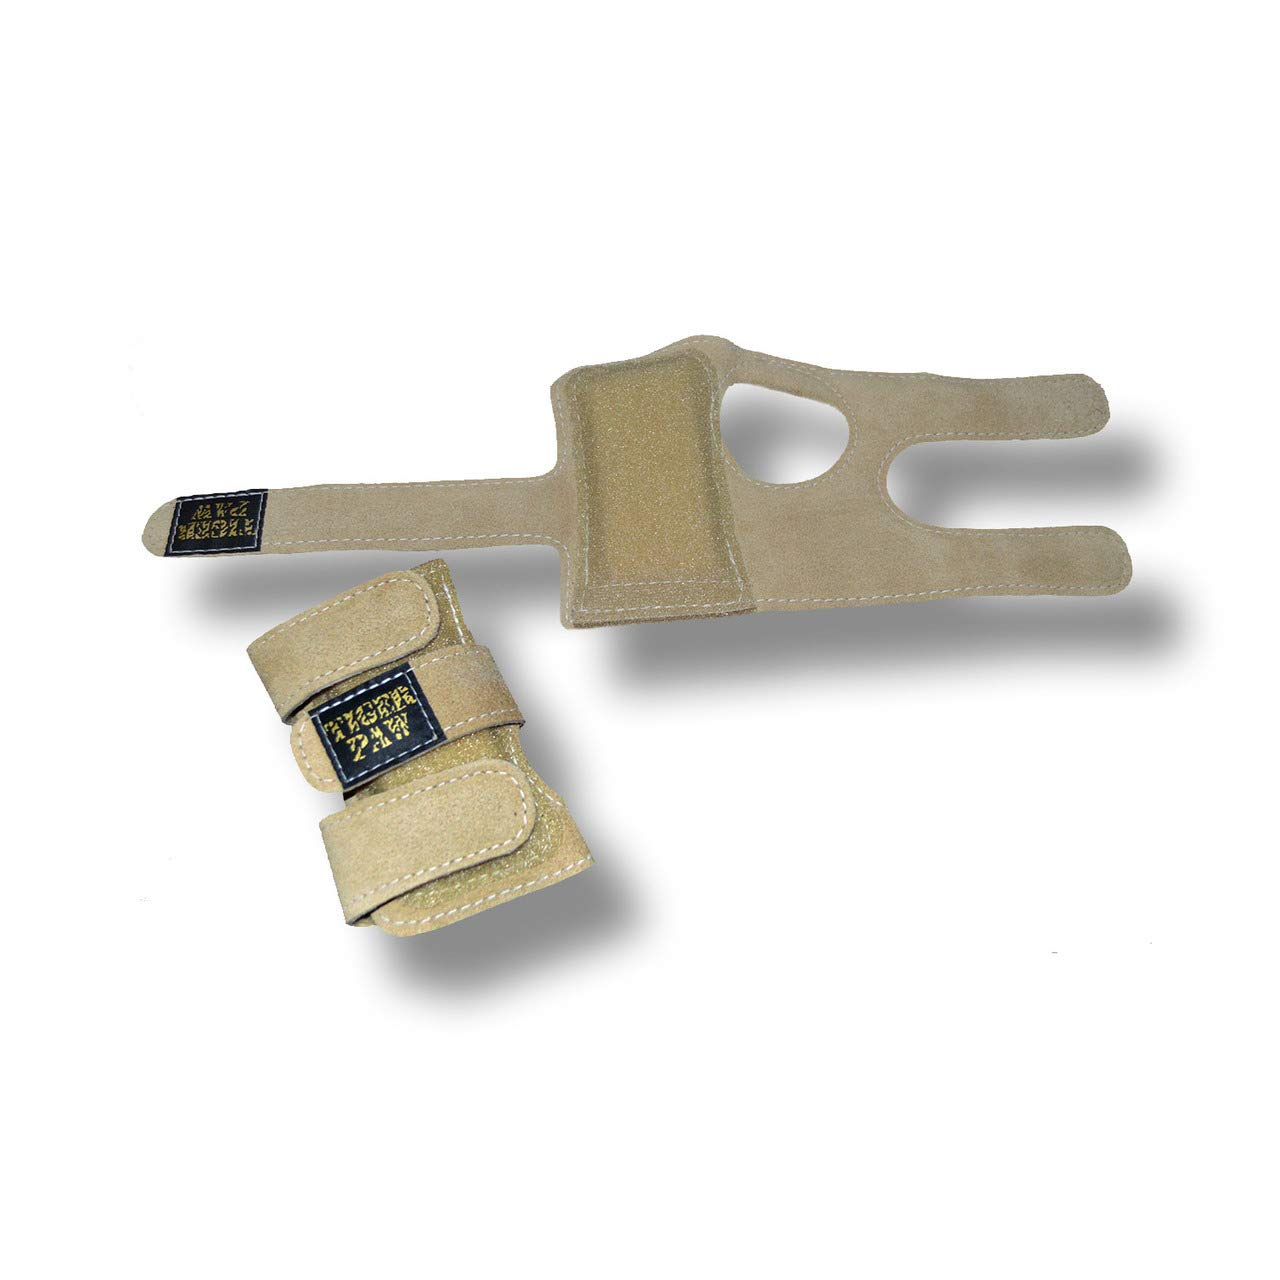 b1e631490cc4 Amazon.com : US Glove Tiger Paws Wrist Wraps - Adjustable Wrist Support  Braces for Gymnastics, Tumbling, and Cheerleading : Sports & Outdoors